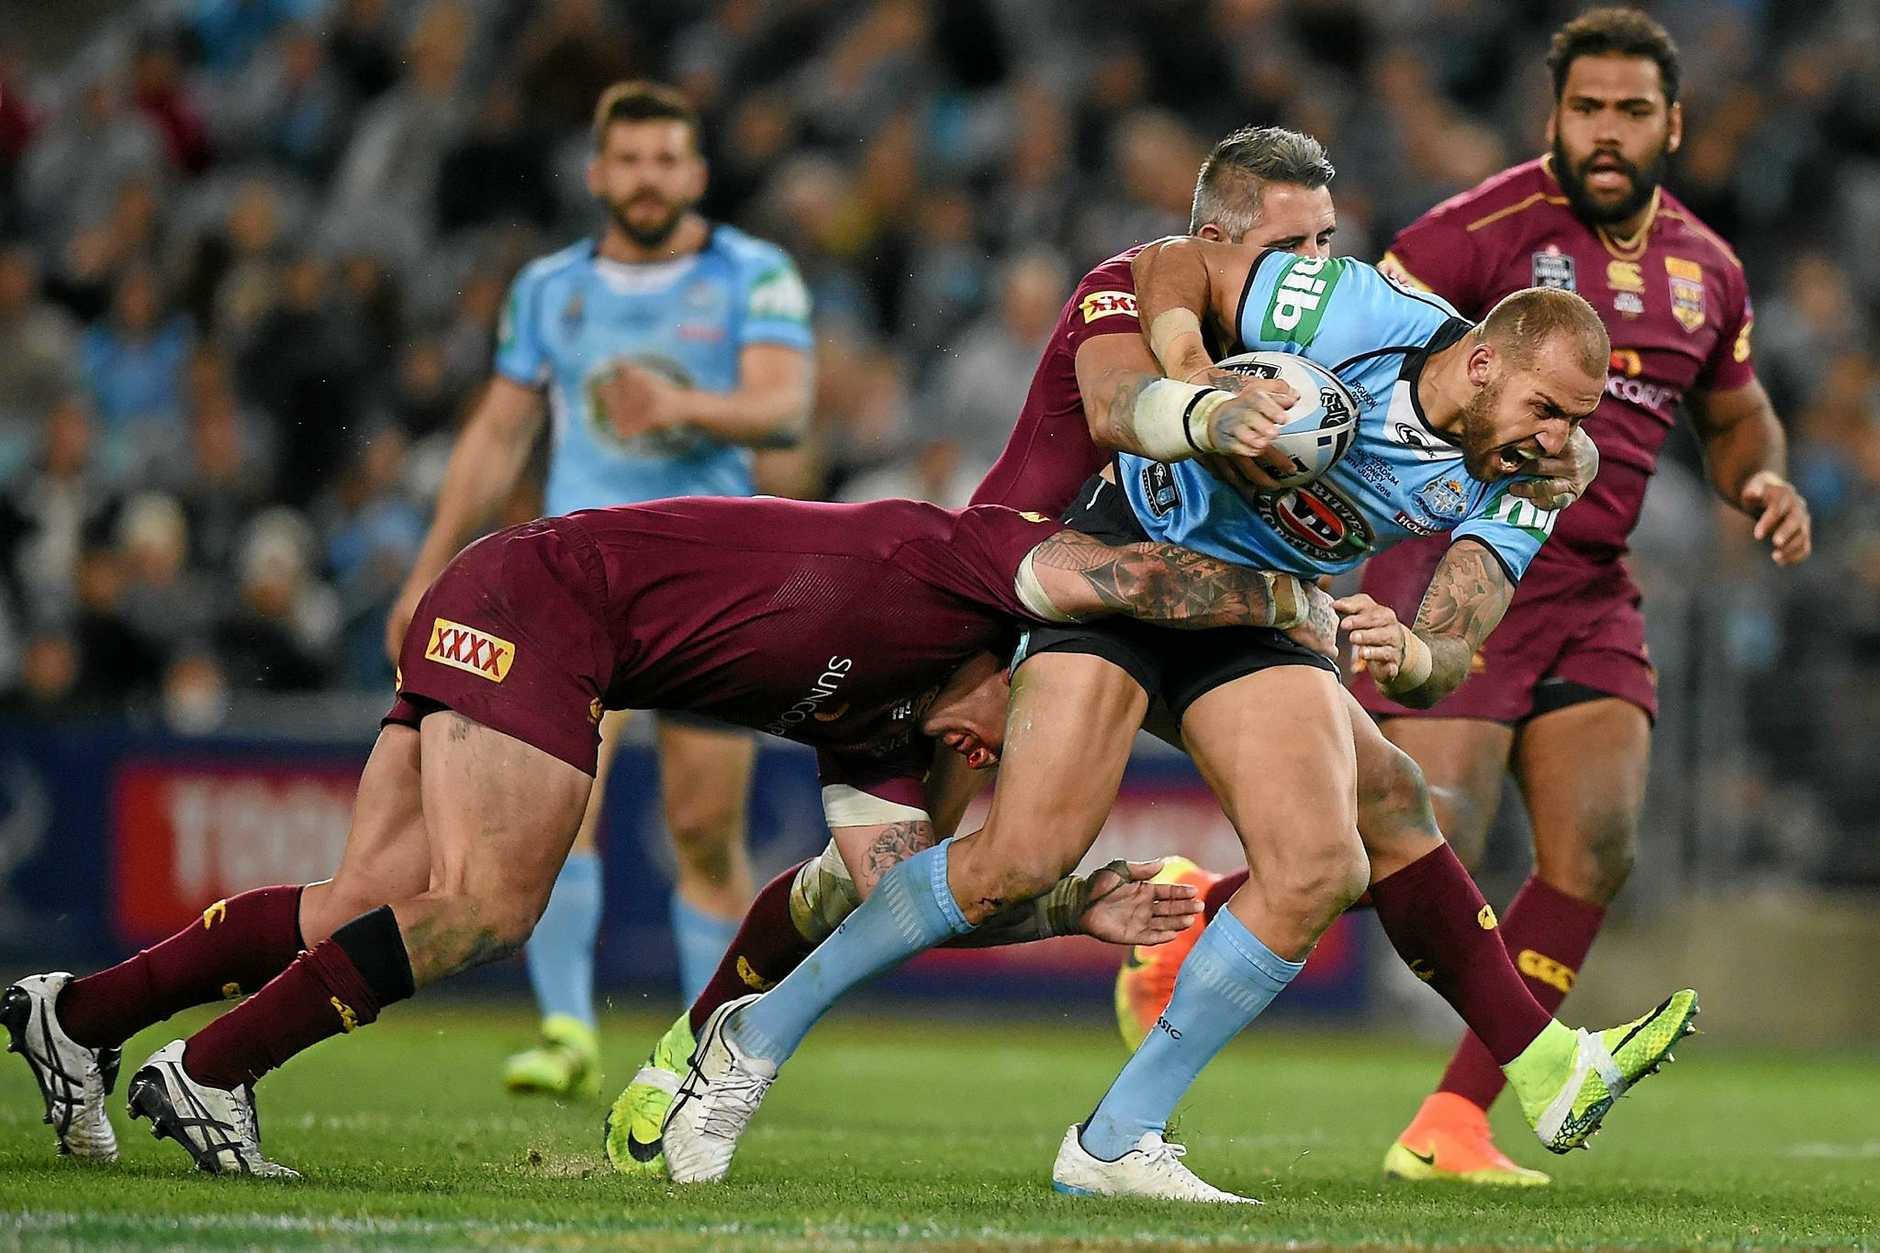 QUEENSLANDER: The Maroons Festival will celebrate the achievements of our Rugby League side.